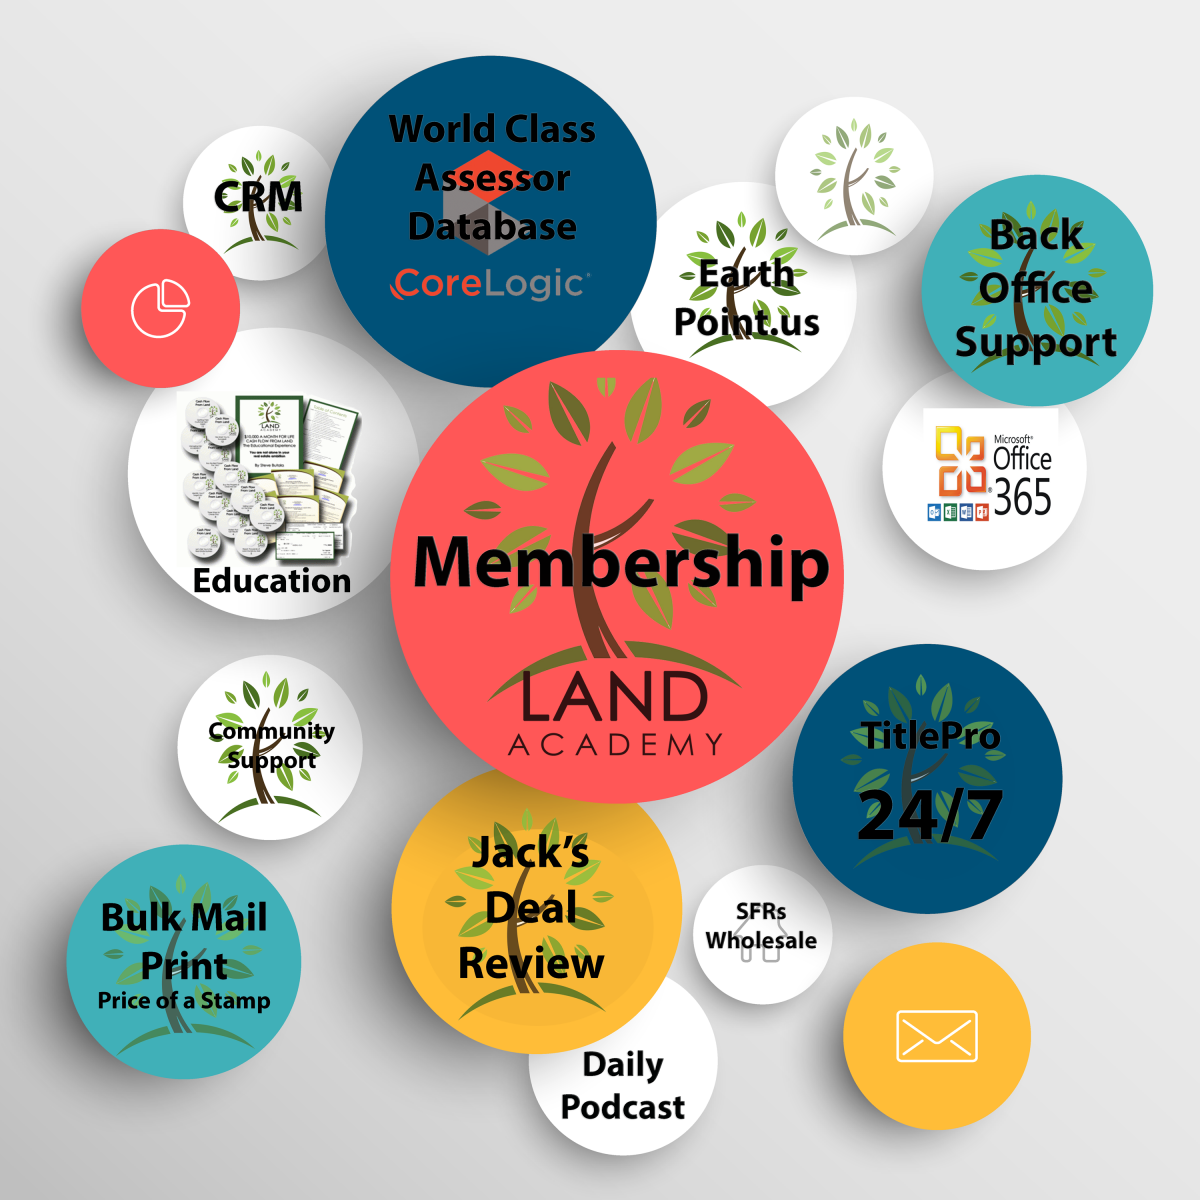 Land Academy Membershipf